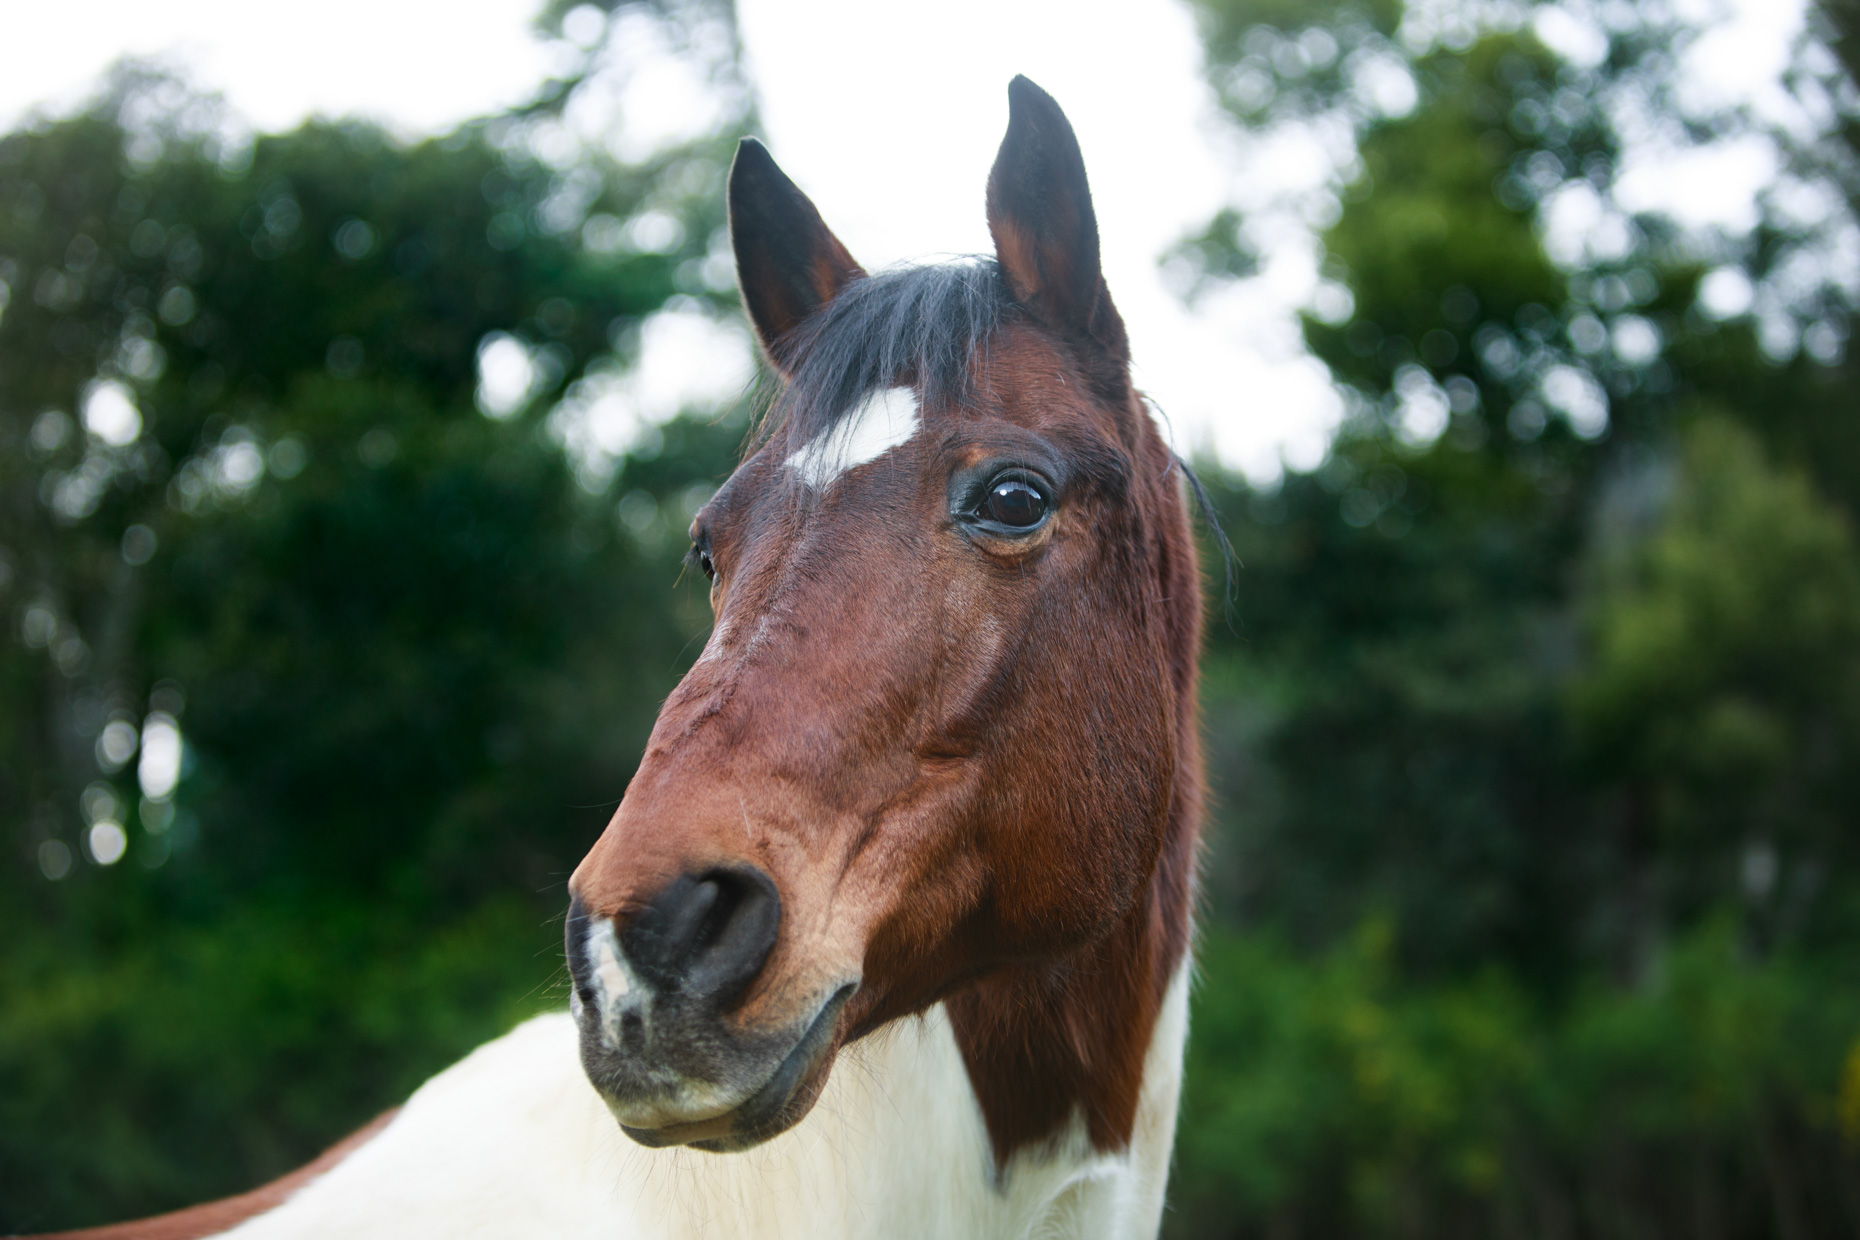 Animal Photography | Horse Portrait by Mark Rogers